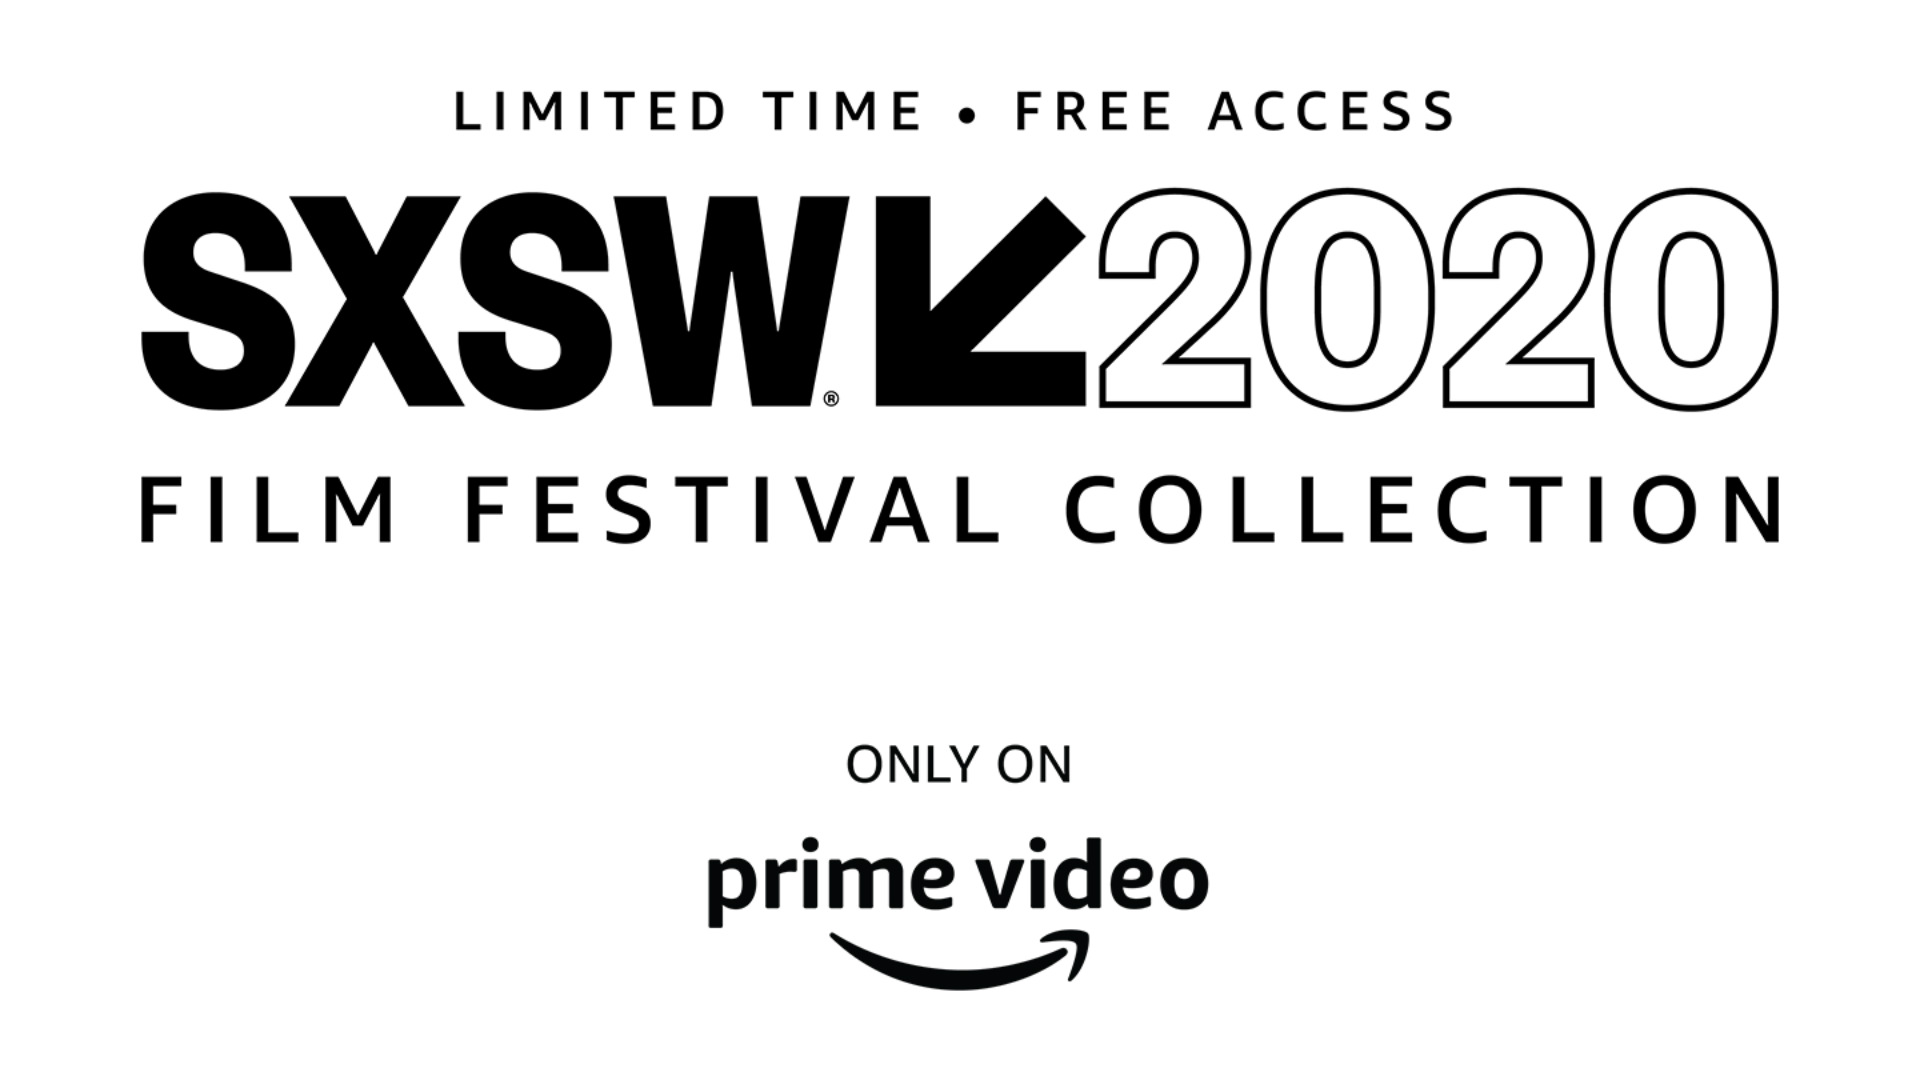 Amazon Prime Video & SXSW Team Up for One-Time Online Film Festival Collection